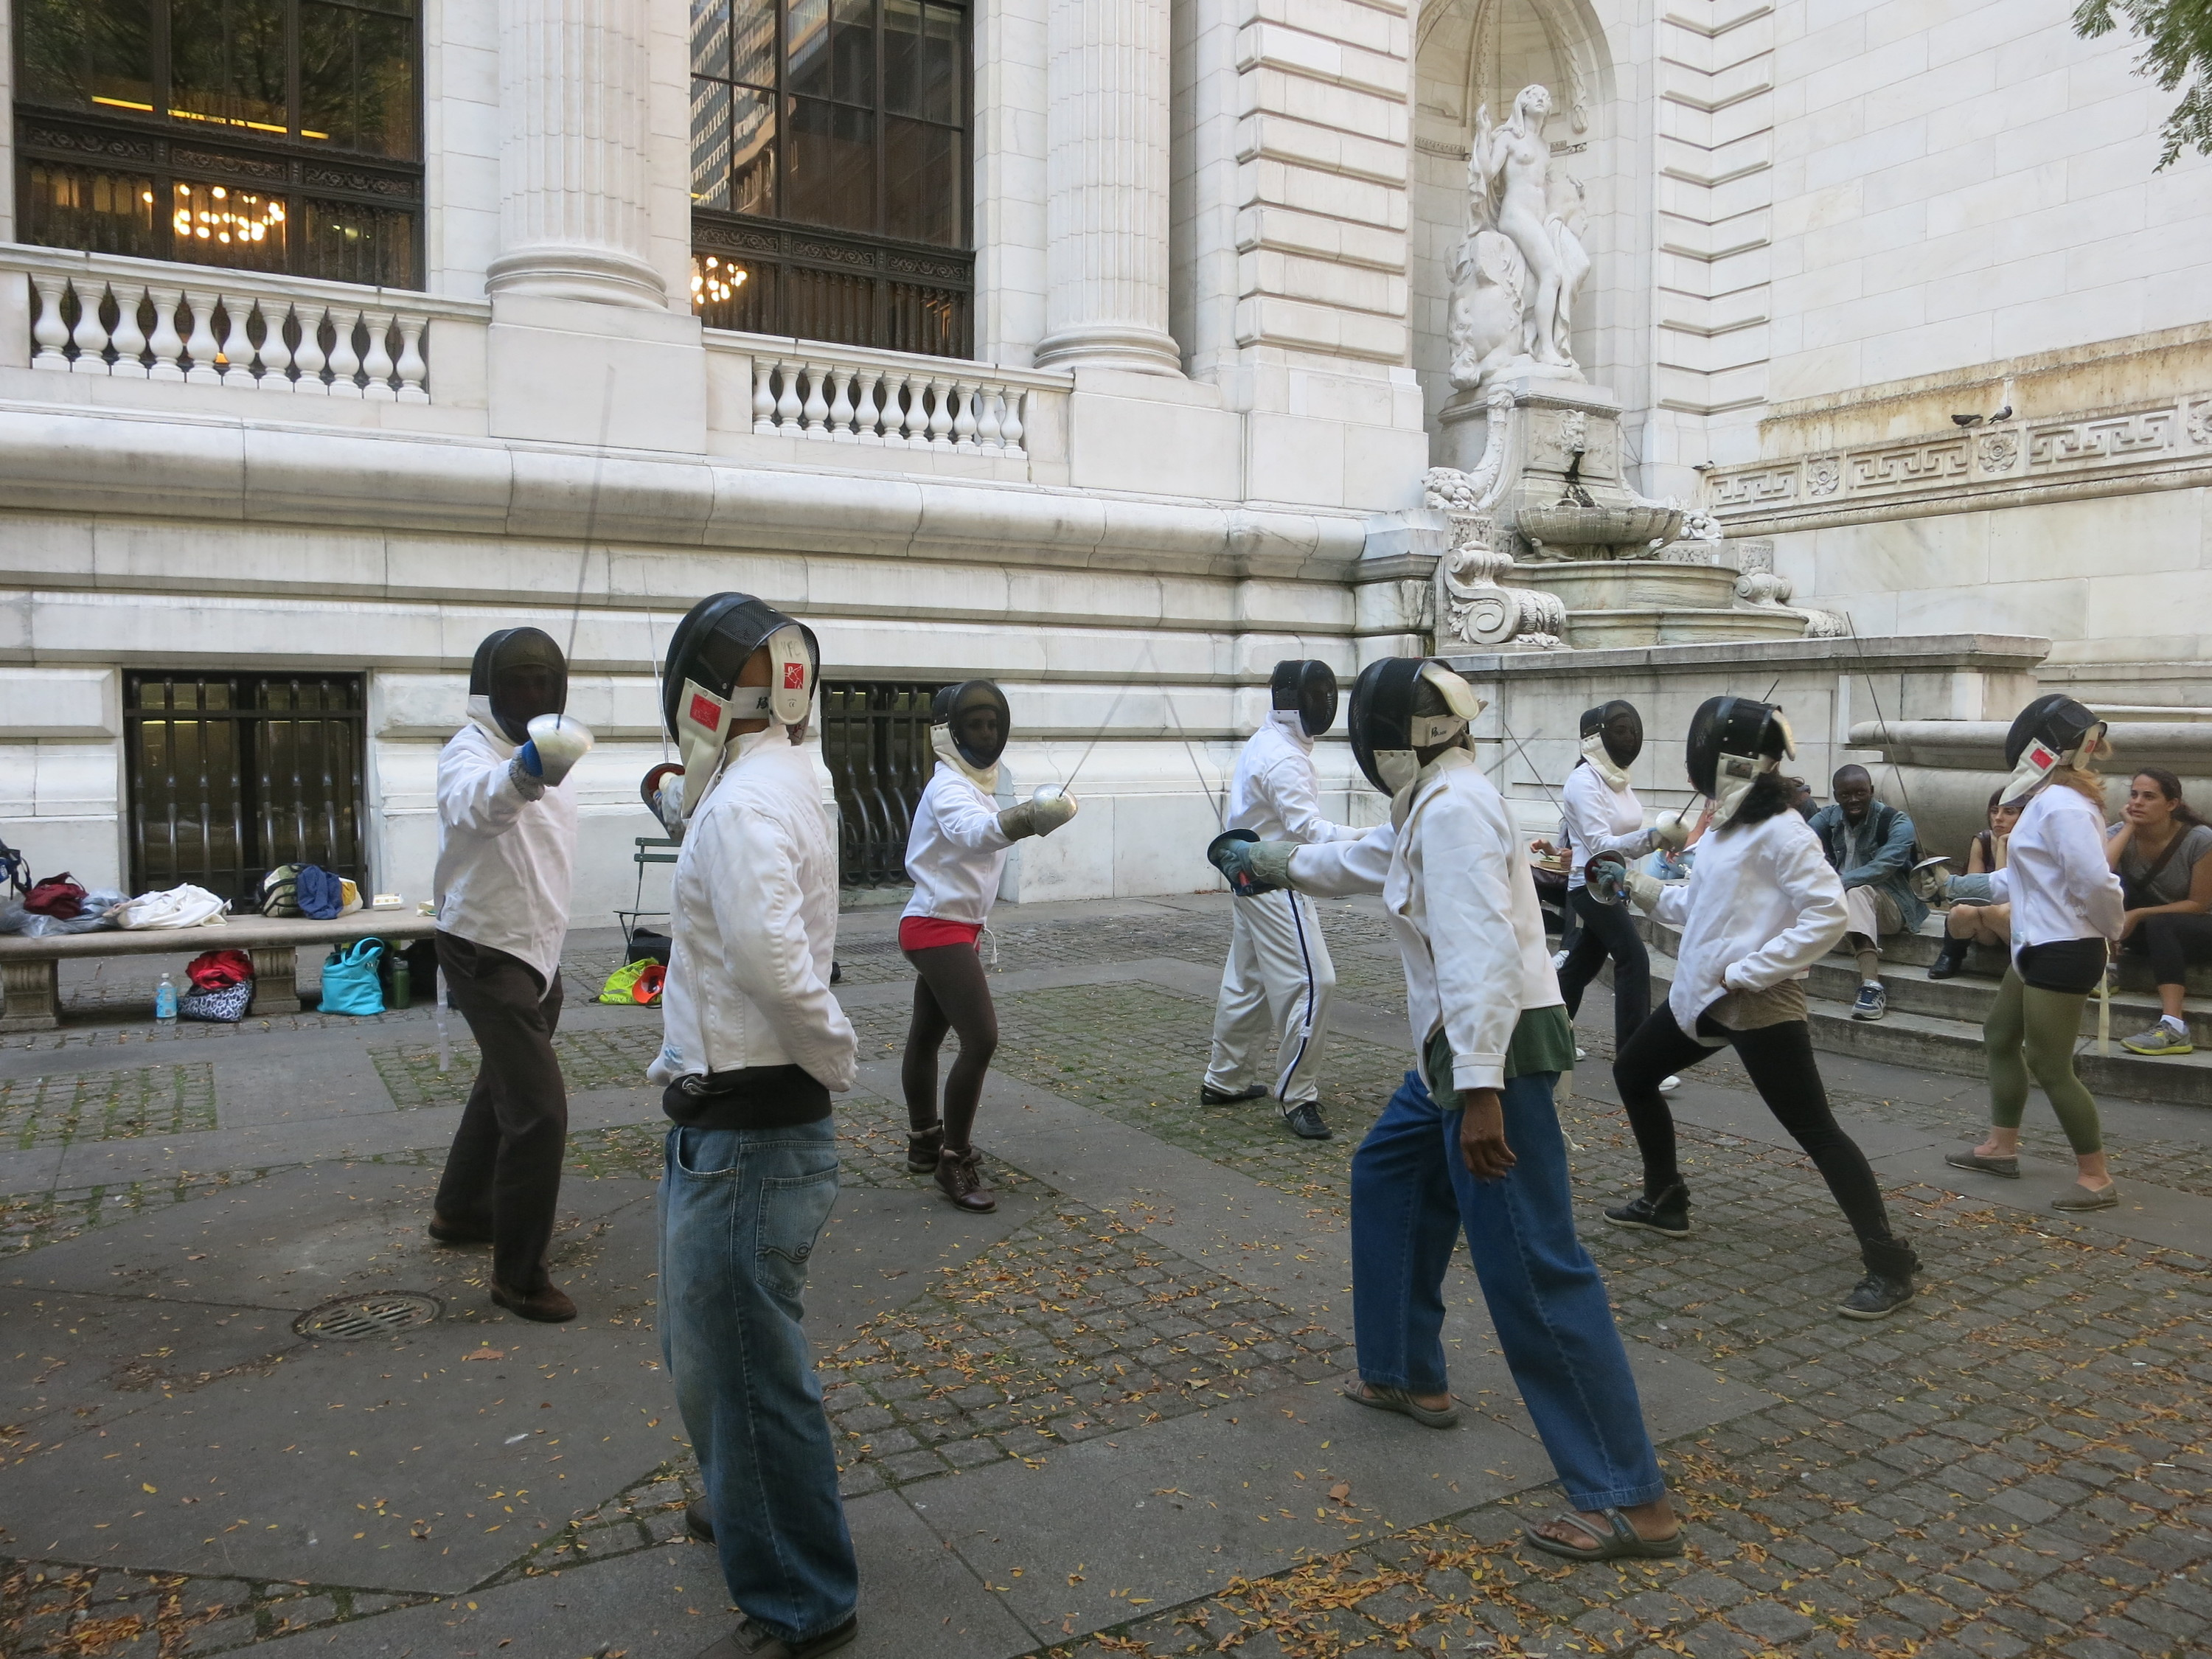 Fencing Lessons In Bryant Park Things To Do In New York